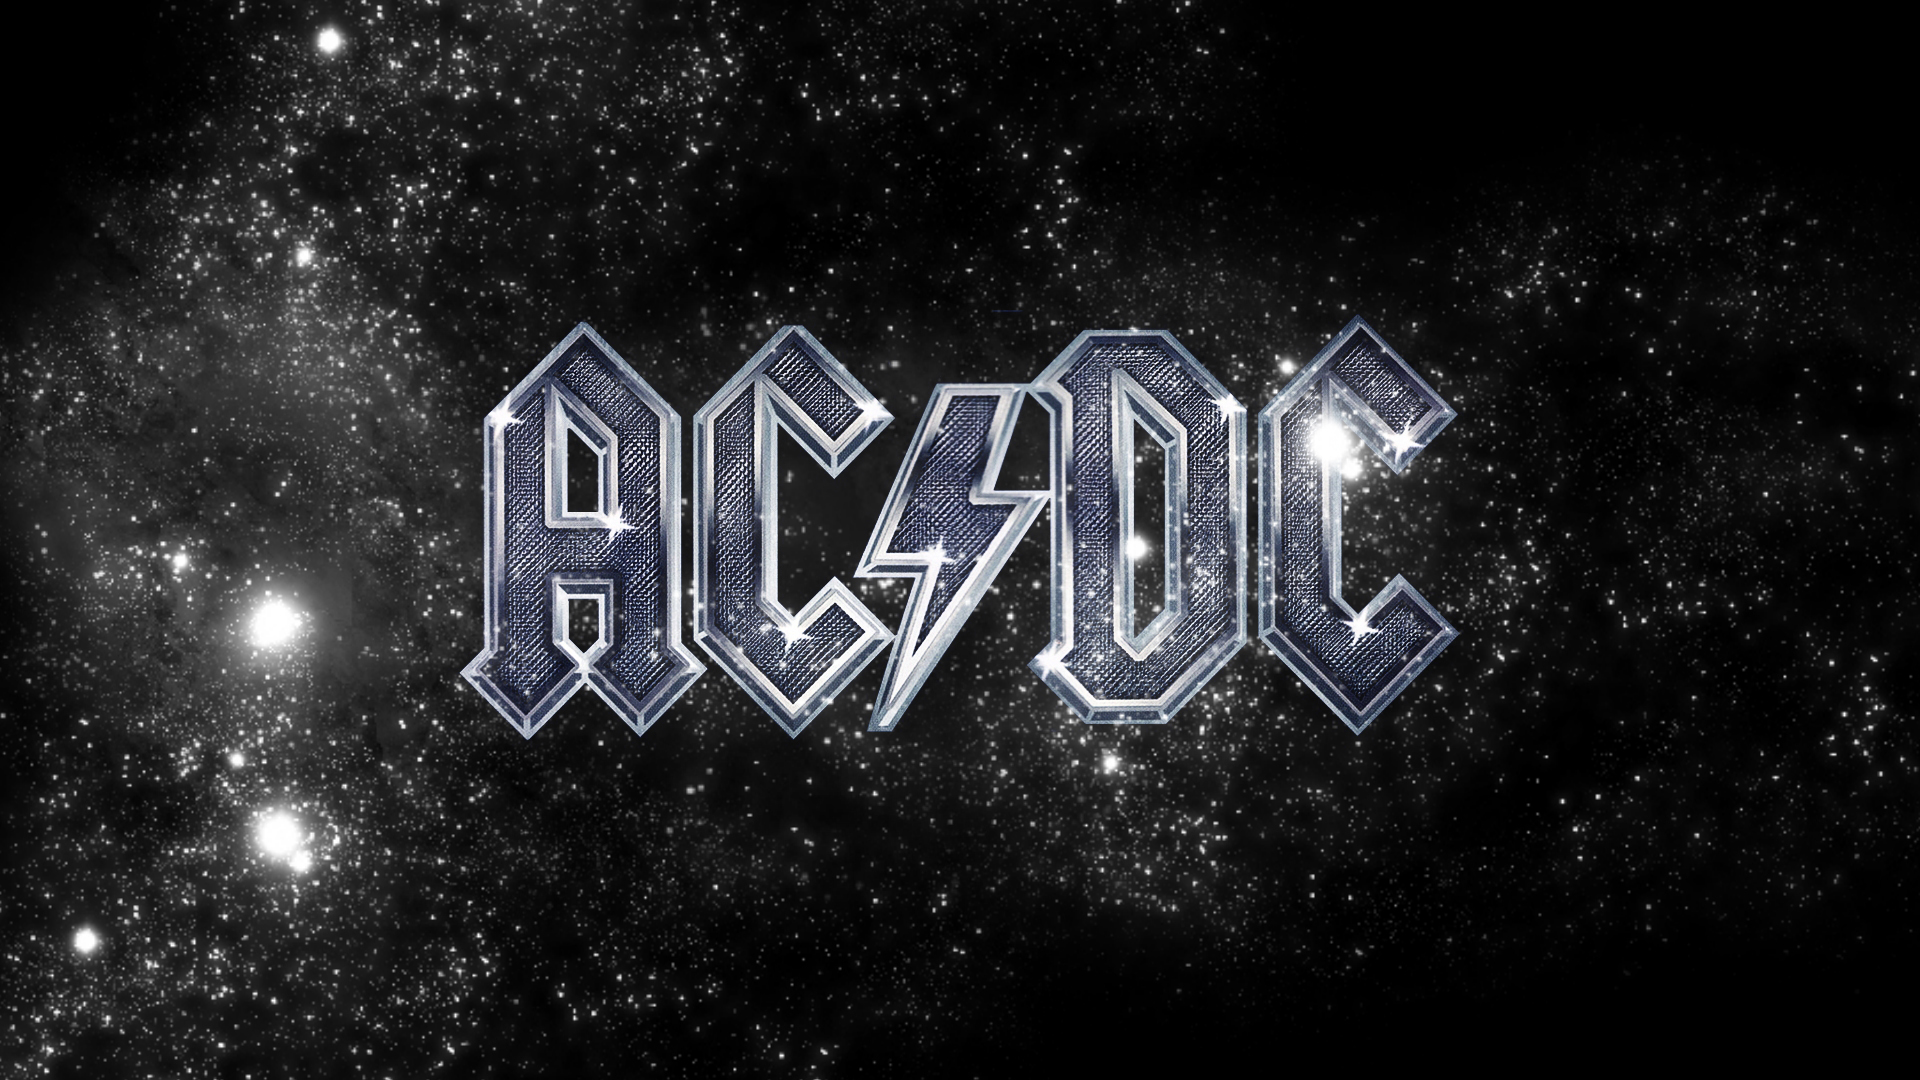 42 Acdc Wallpapers Free On Wallpapersafari